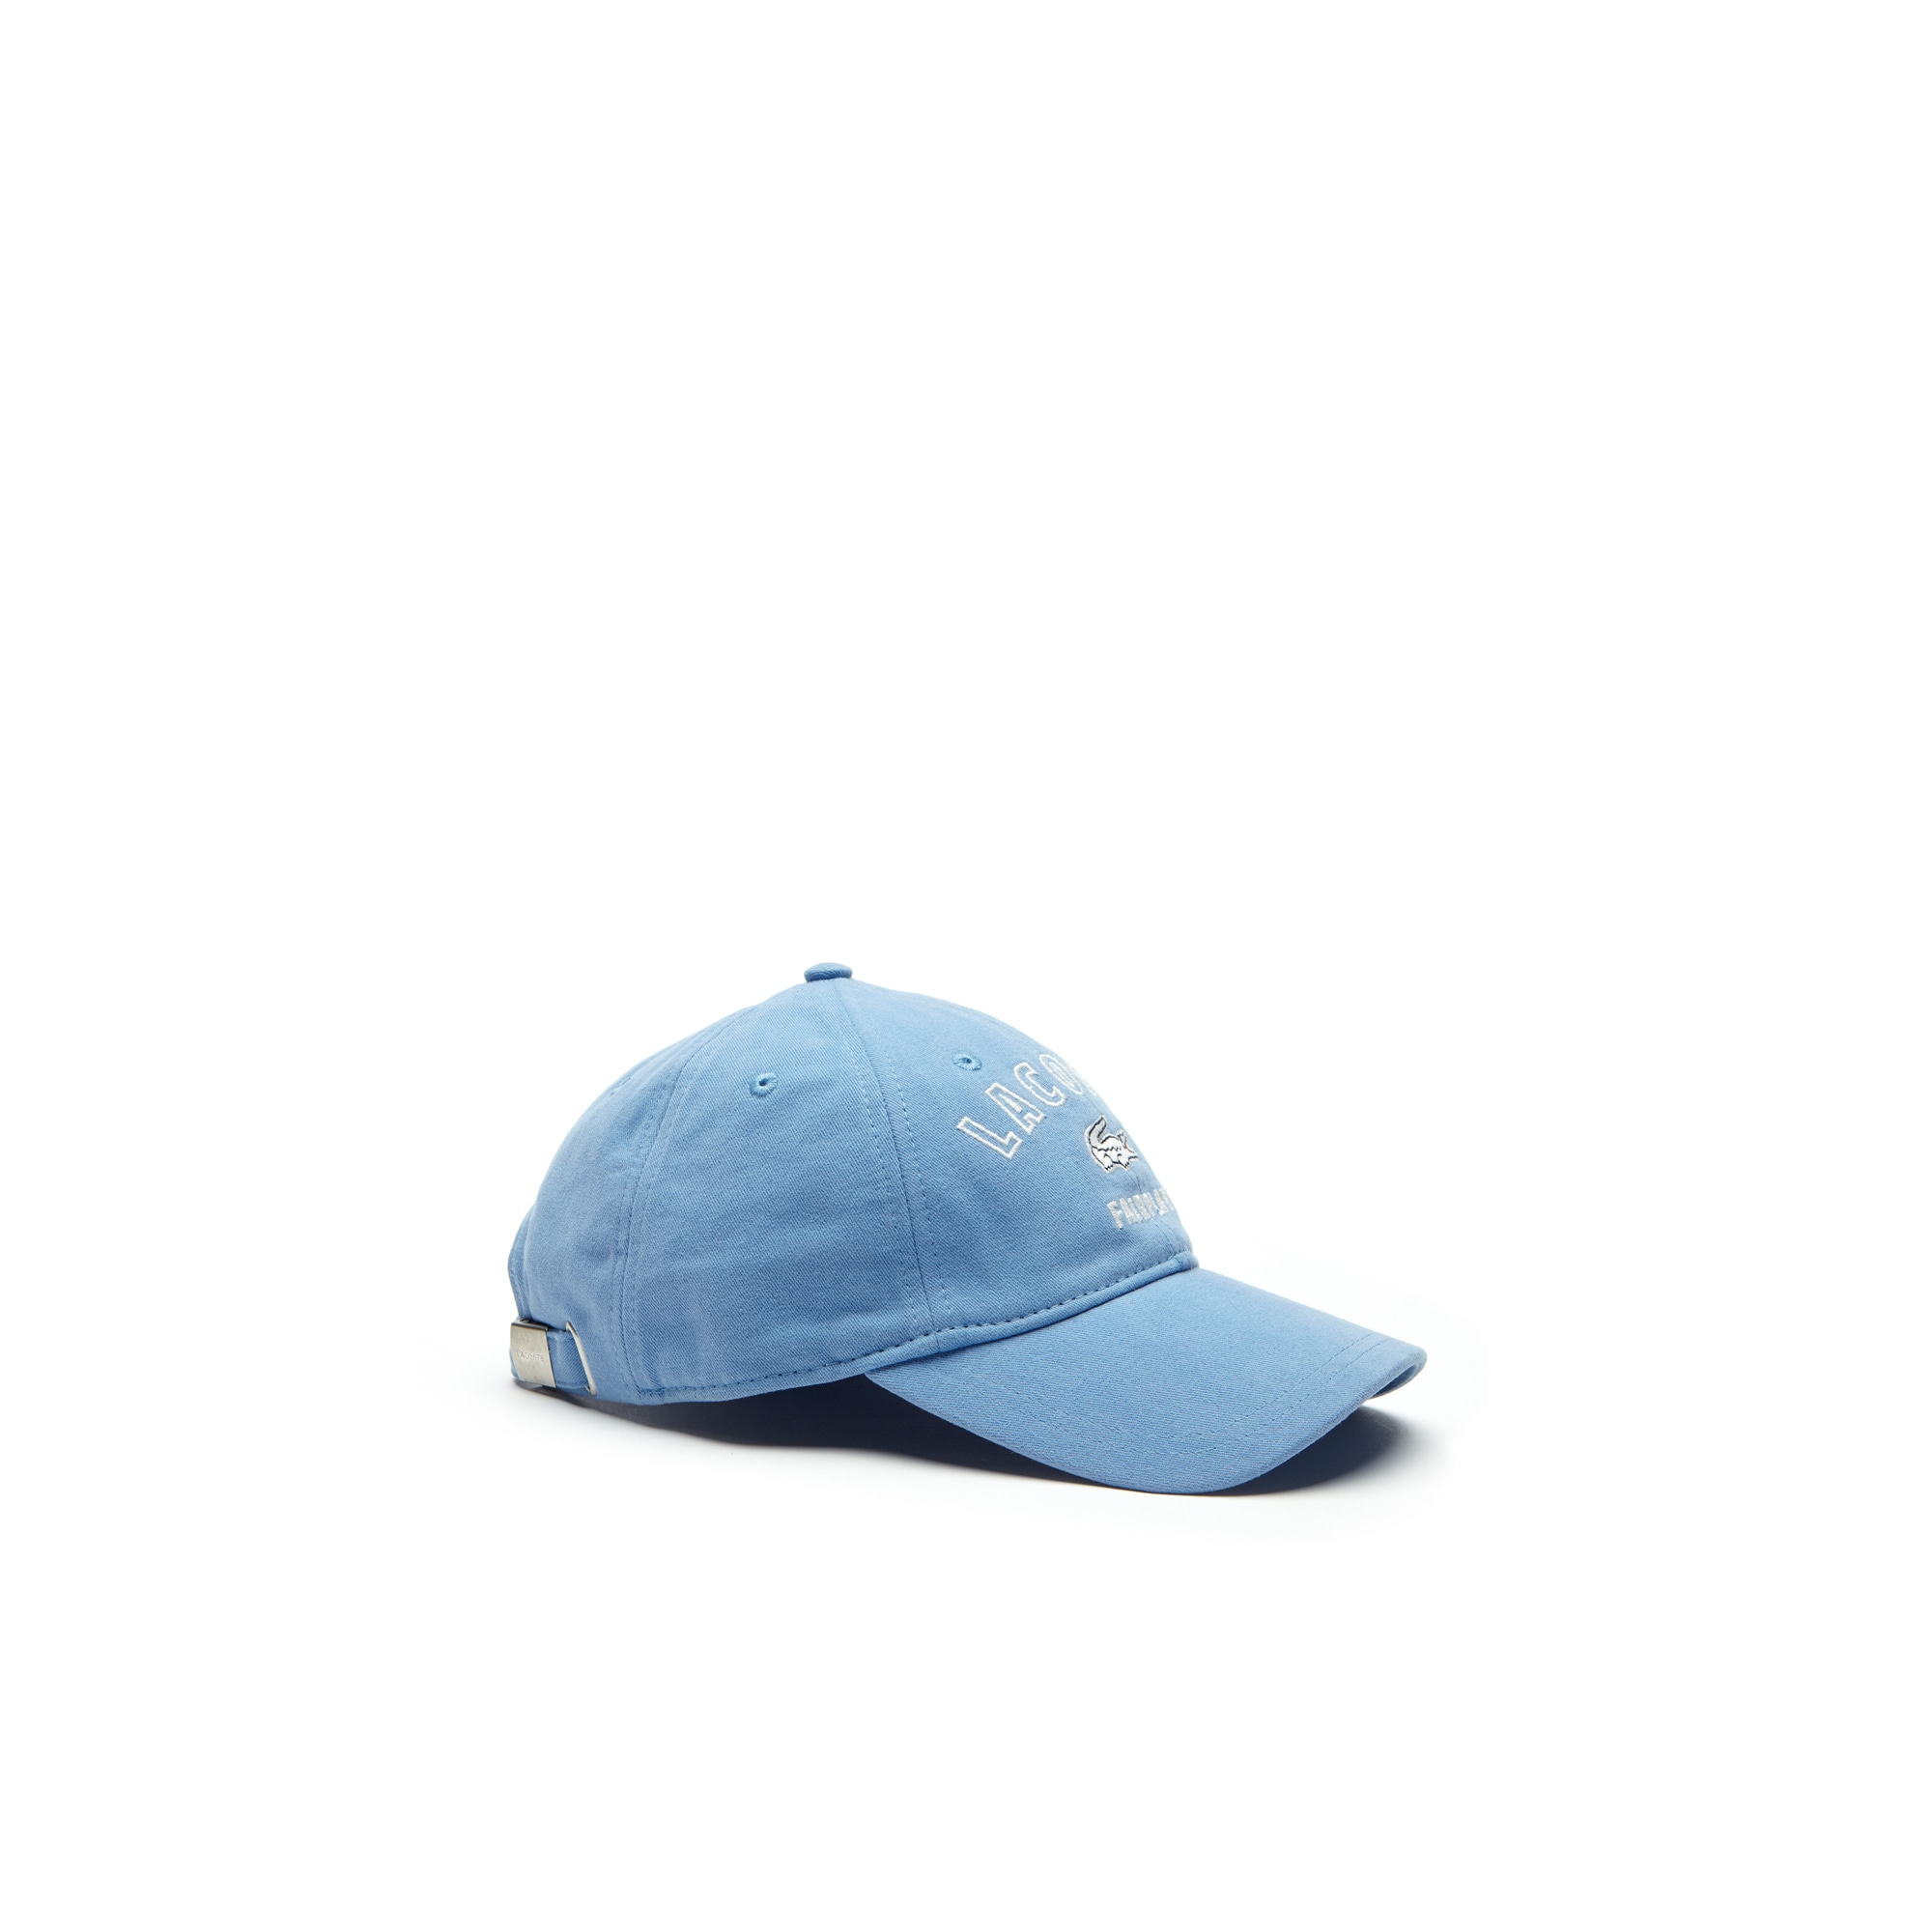 Men's Lacoste Fairplay Cotton Gabardine Cap